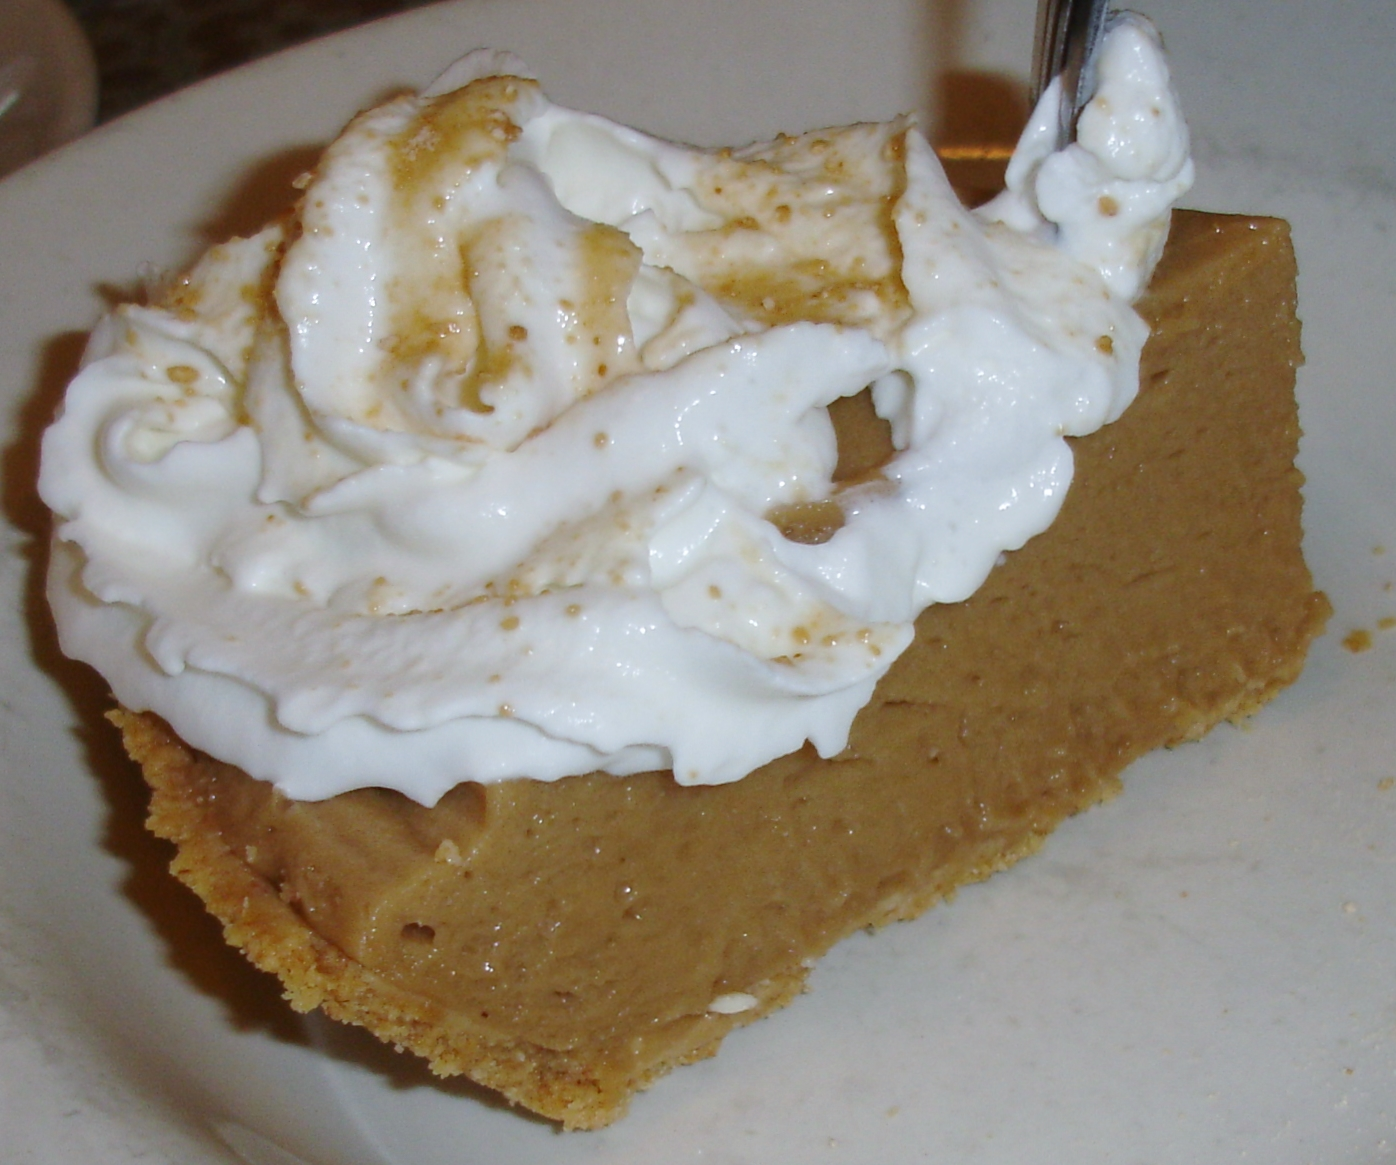 Vermont Maple Cream Pie was what brought us back to the cafe the next morning.